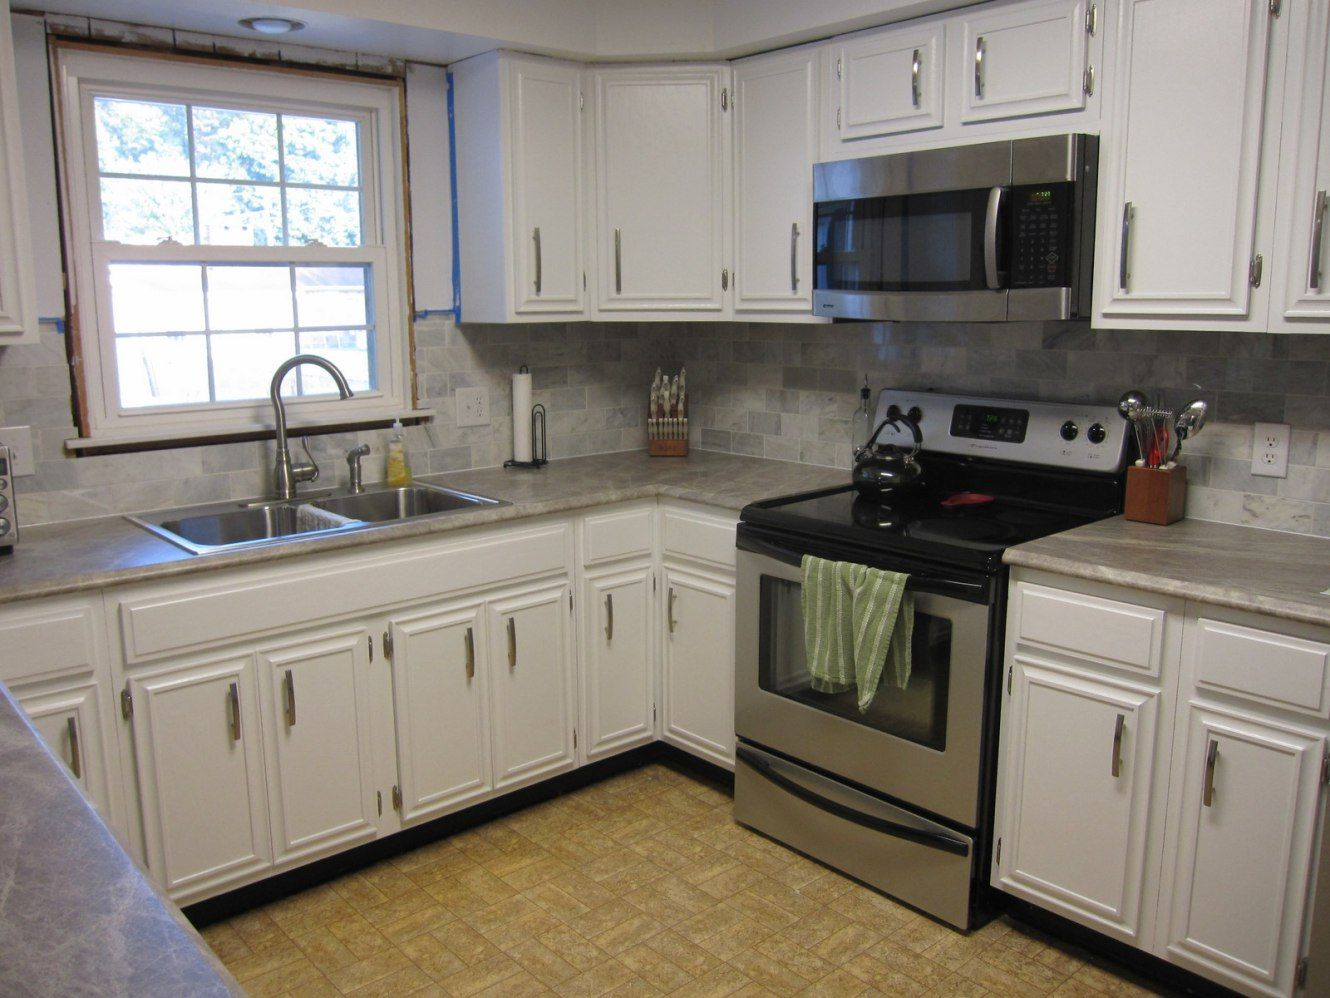 Scott U0026 Allie Break Down The Cost Of Their Kitchen Redesign And Renovation  Featuring Formica®